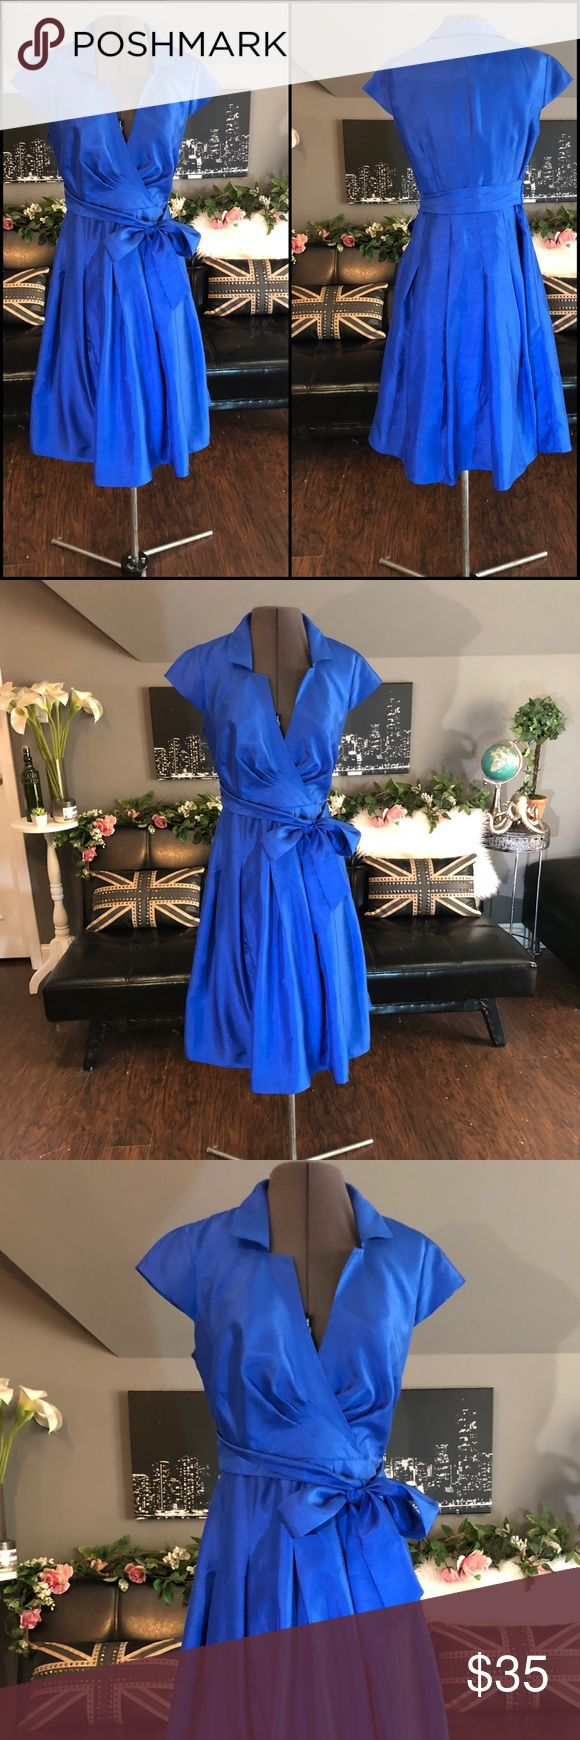 Kim Rogers Classy Electric Blue Flair Skirt Dress Kim Rogers  Size 6  Electric Blue  Flair Skirt  Well Lined  Quality material  Not thin or see through  Comfortable  Not stiff.  Easy to move or sit in. Kim Rogers Dresses Wedding